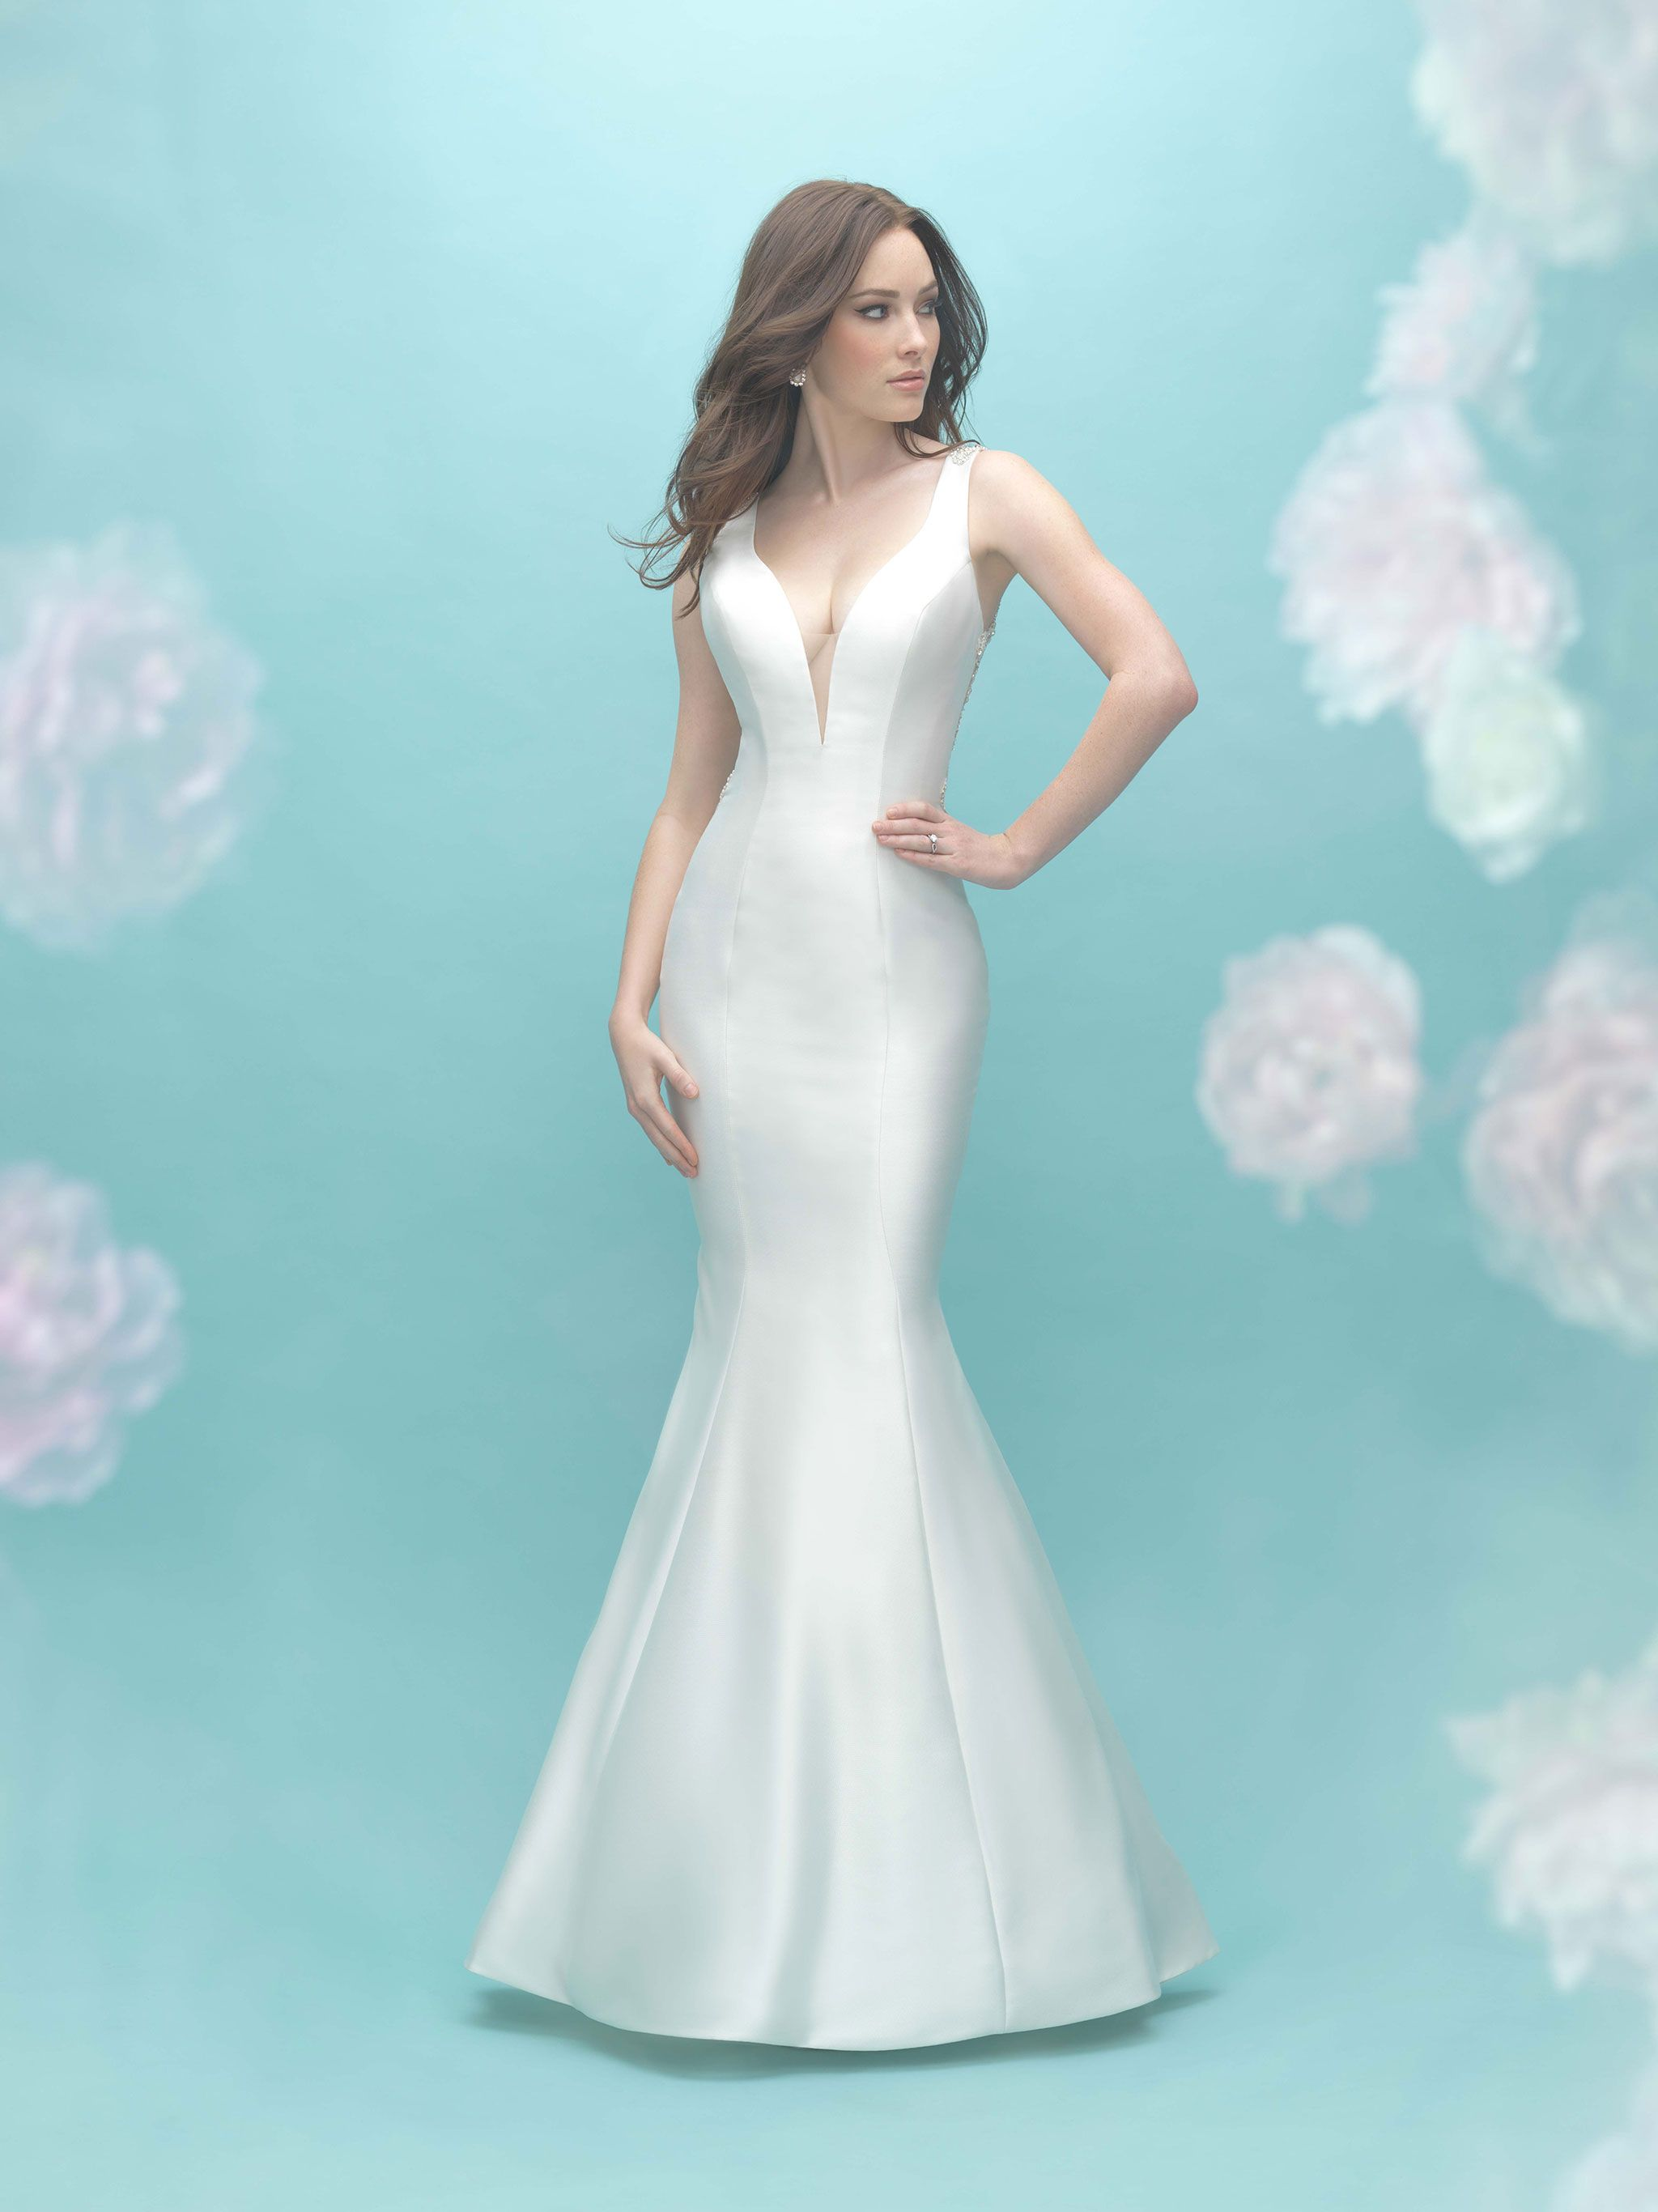 The Allure Bridal Collection Can Be Found At Bellevue Boutique La Belle Elaines Pearls And Lace Wedding Bell